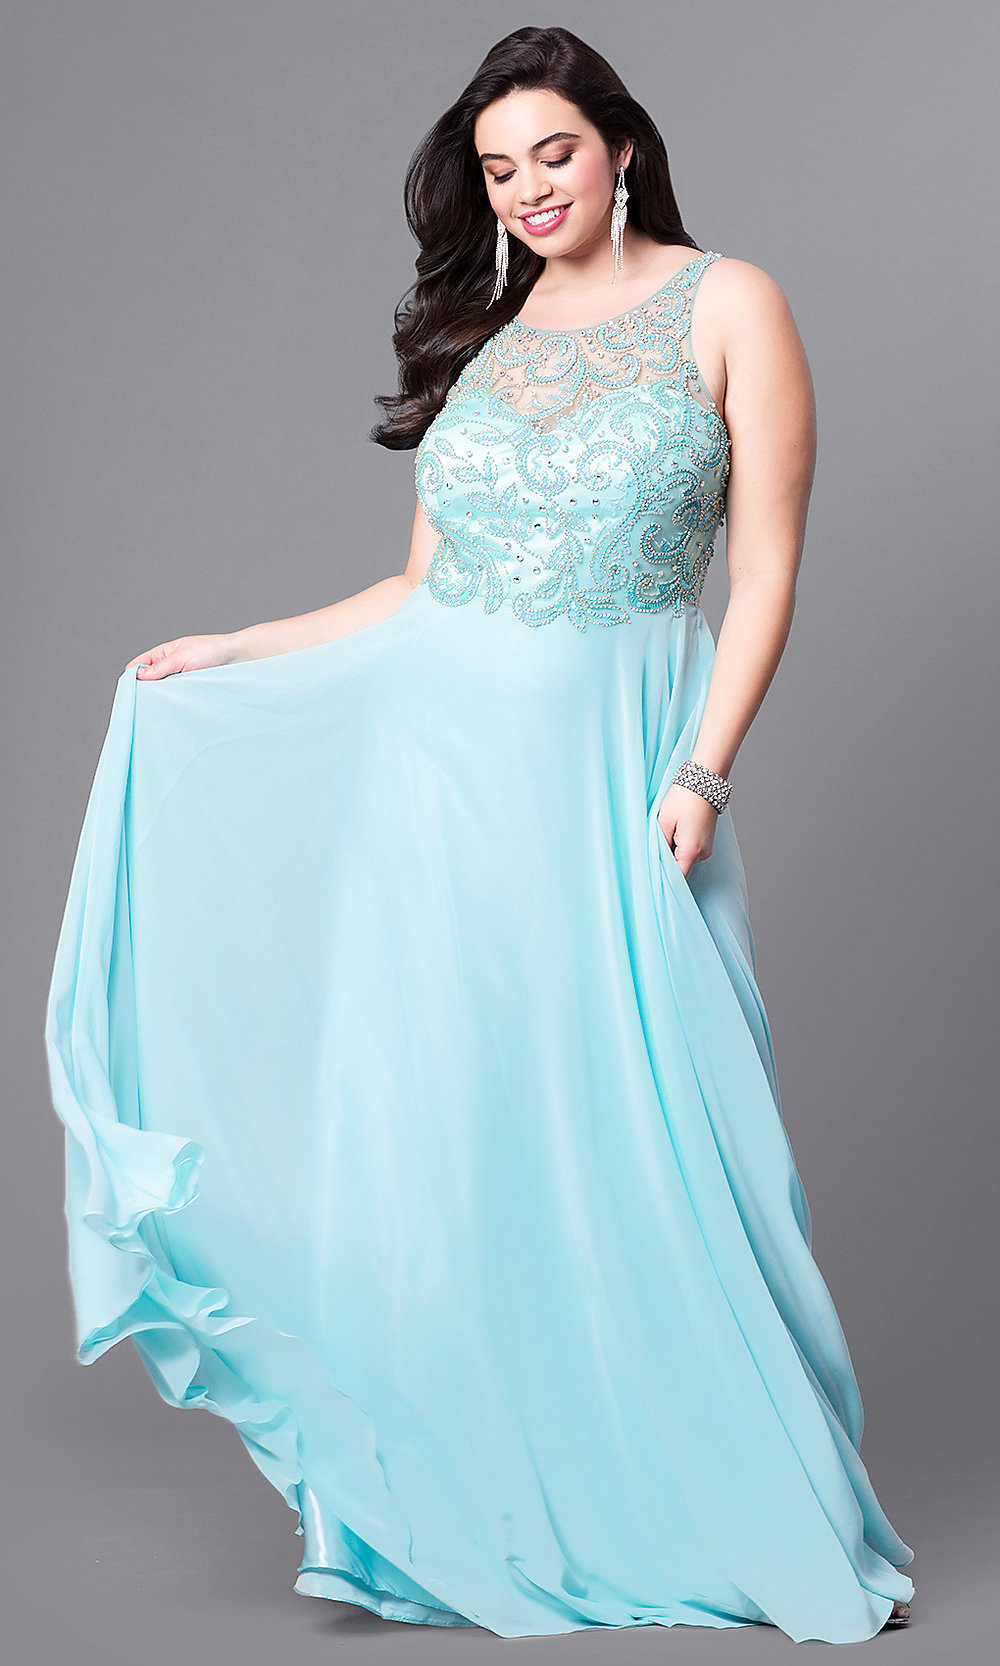 Lovely Prom Dresses For Hourglass Figure Pictures Inspiration ...